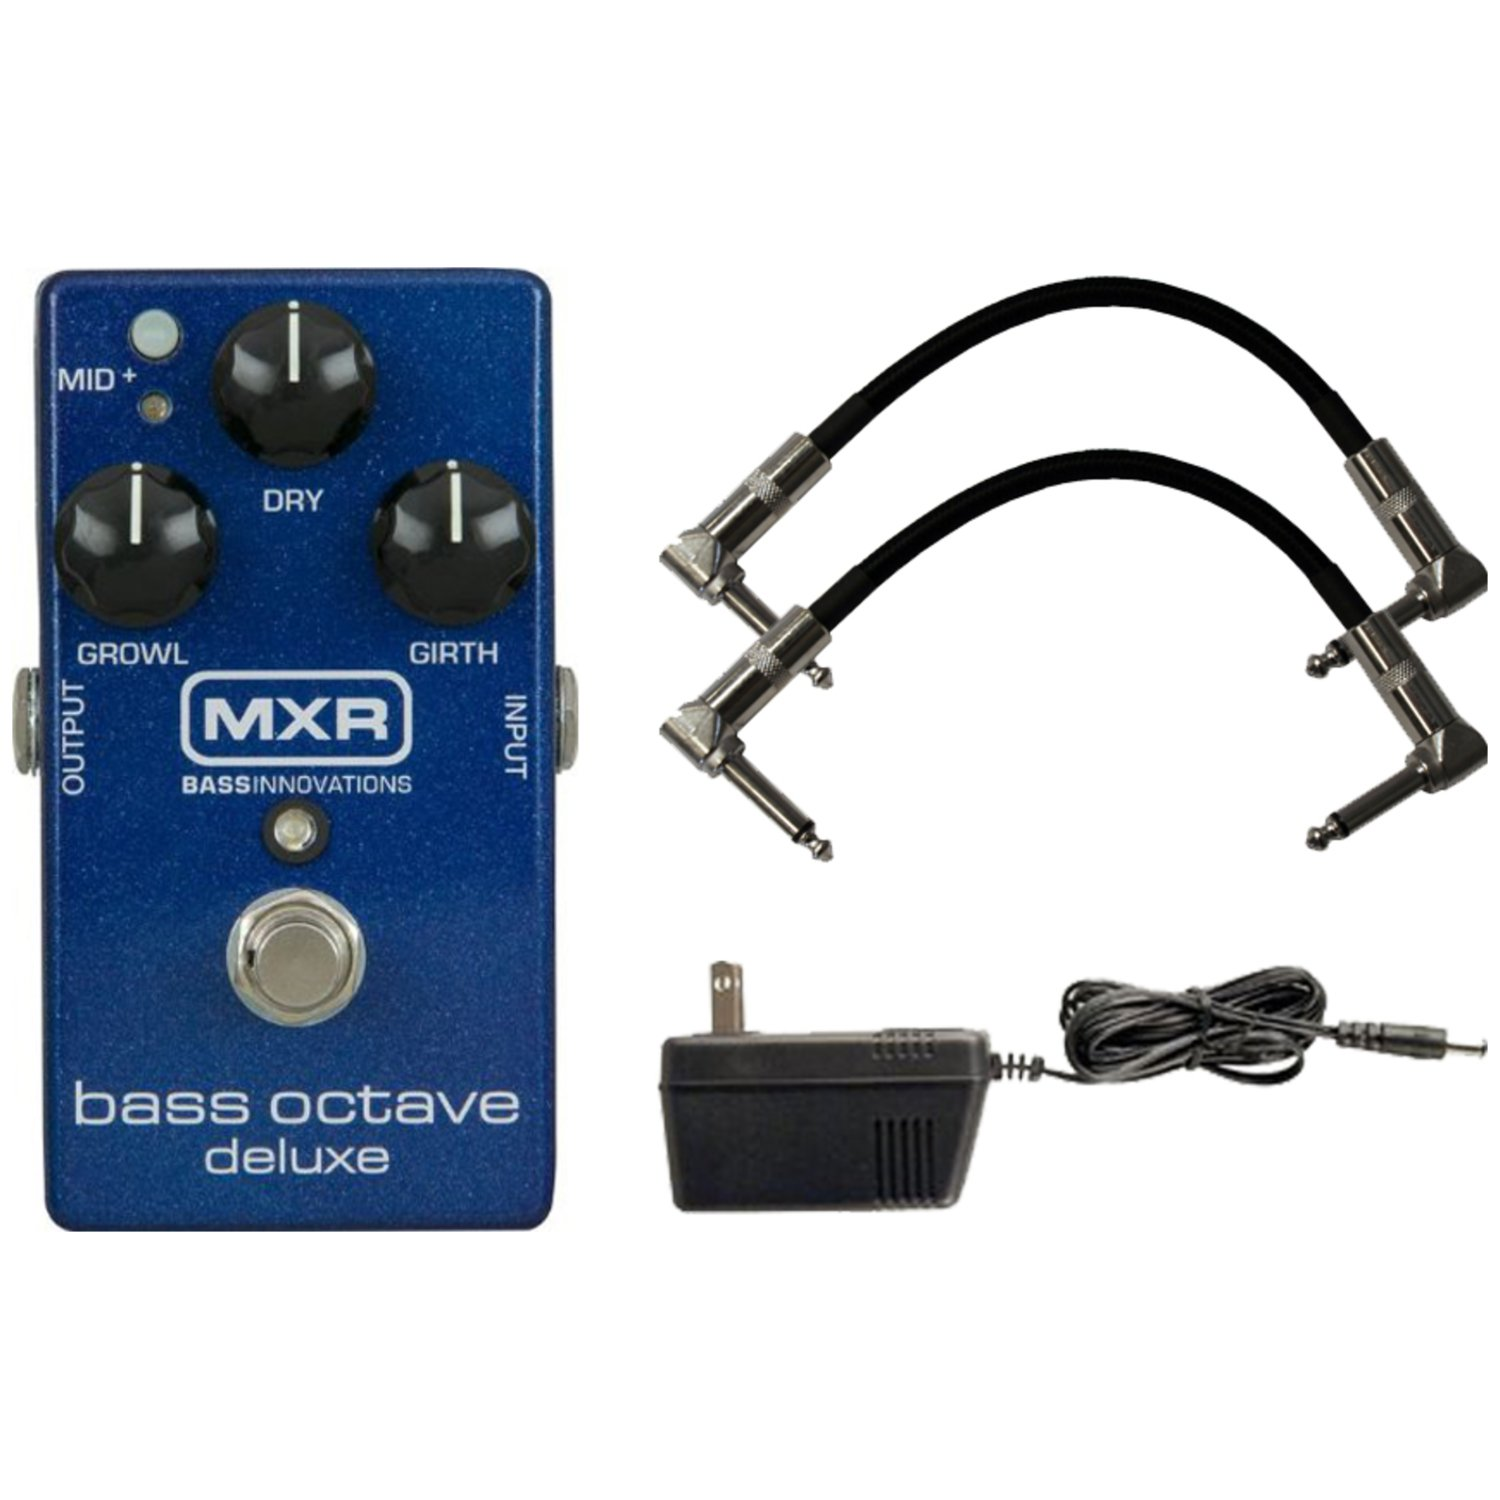 MXR M288 Bass Octave Deluxe Pedal with 9V Power Supply and a Pair of Patch Cables by MXR